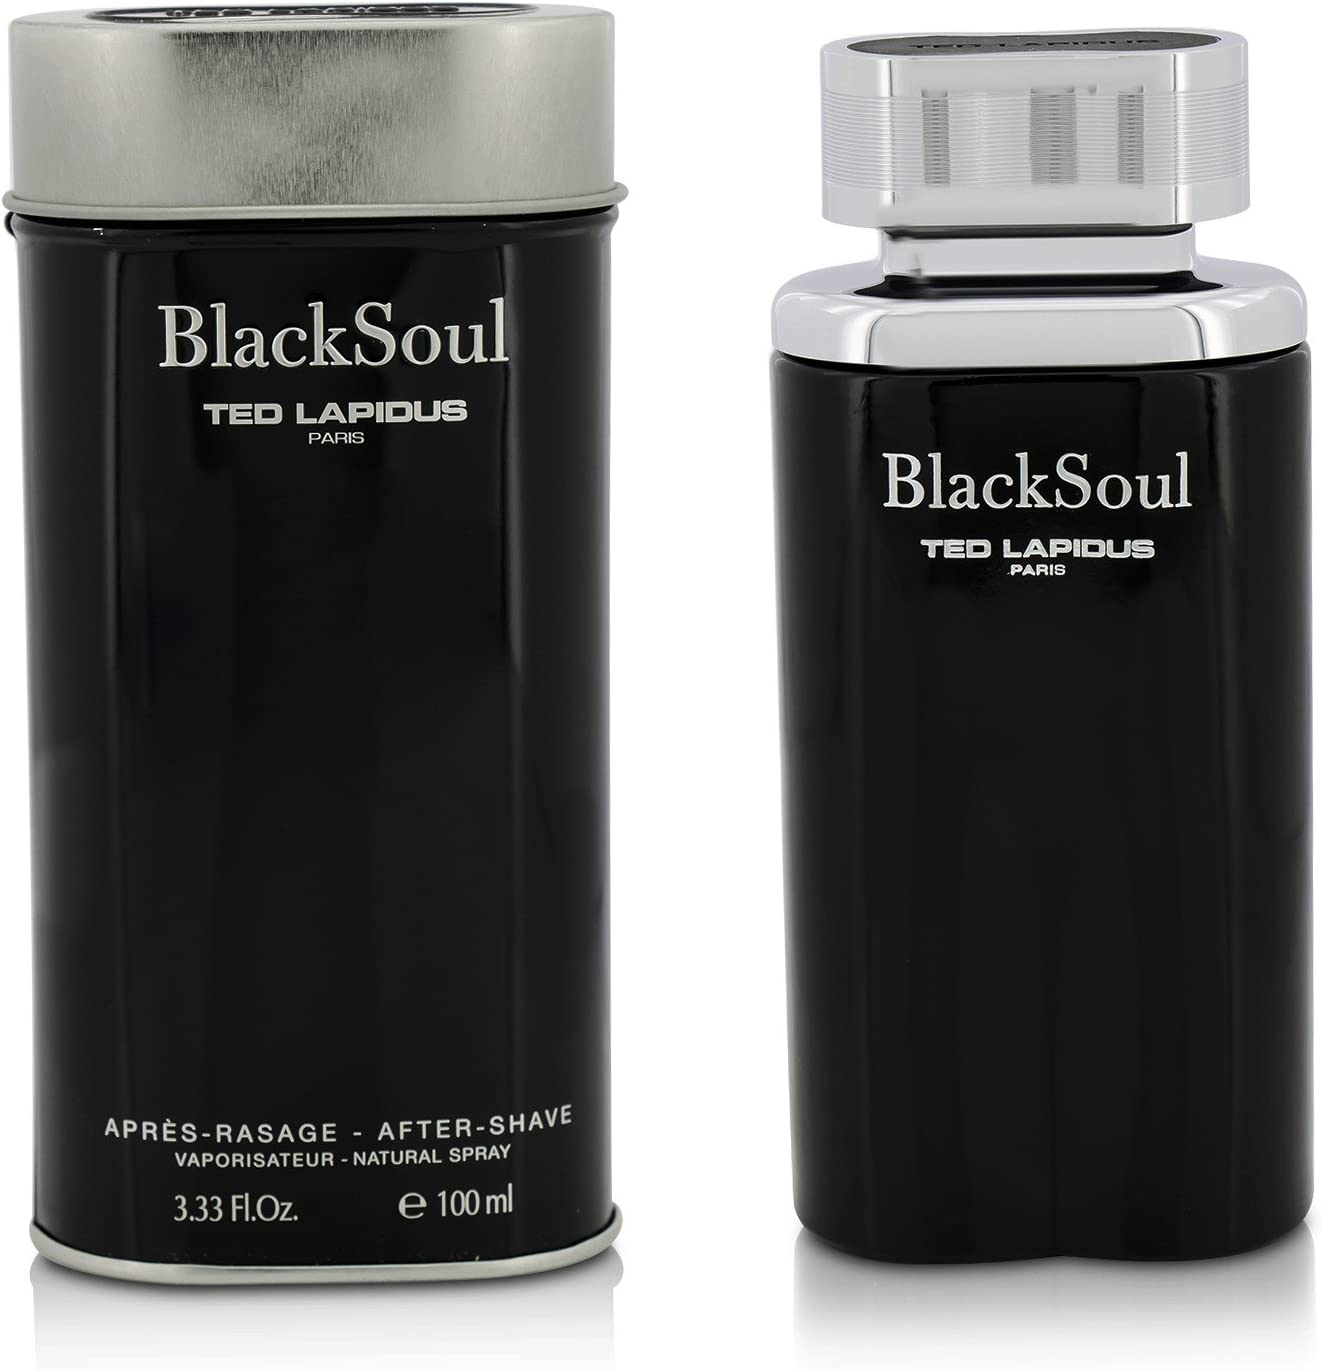 BLACK SOUL cologne by Ted Lapidus